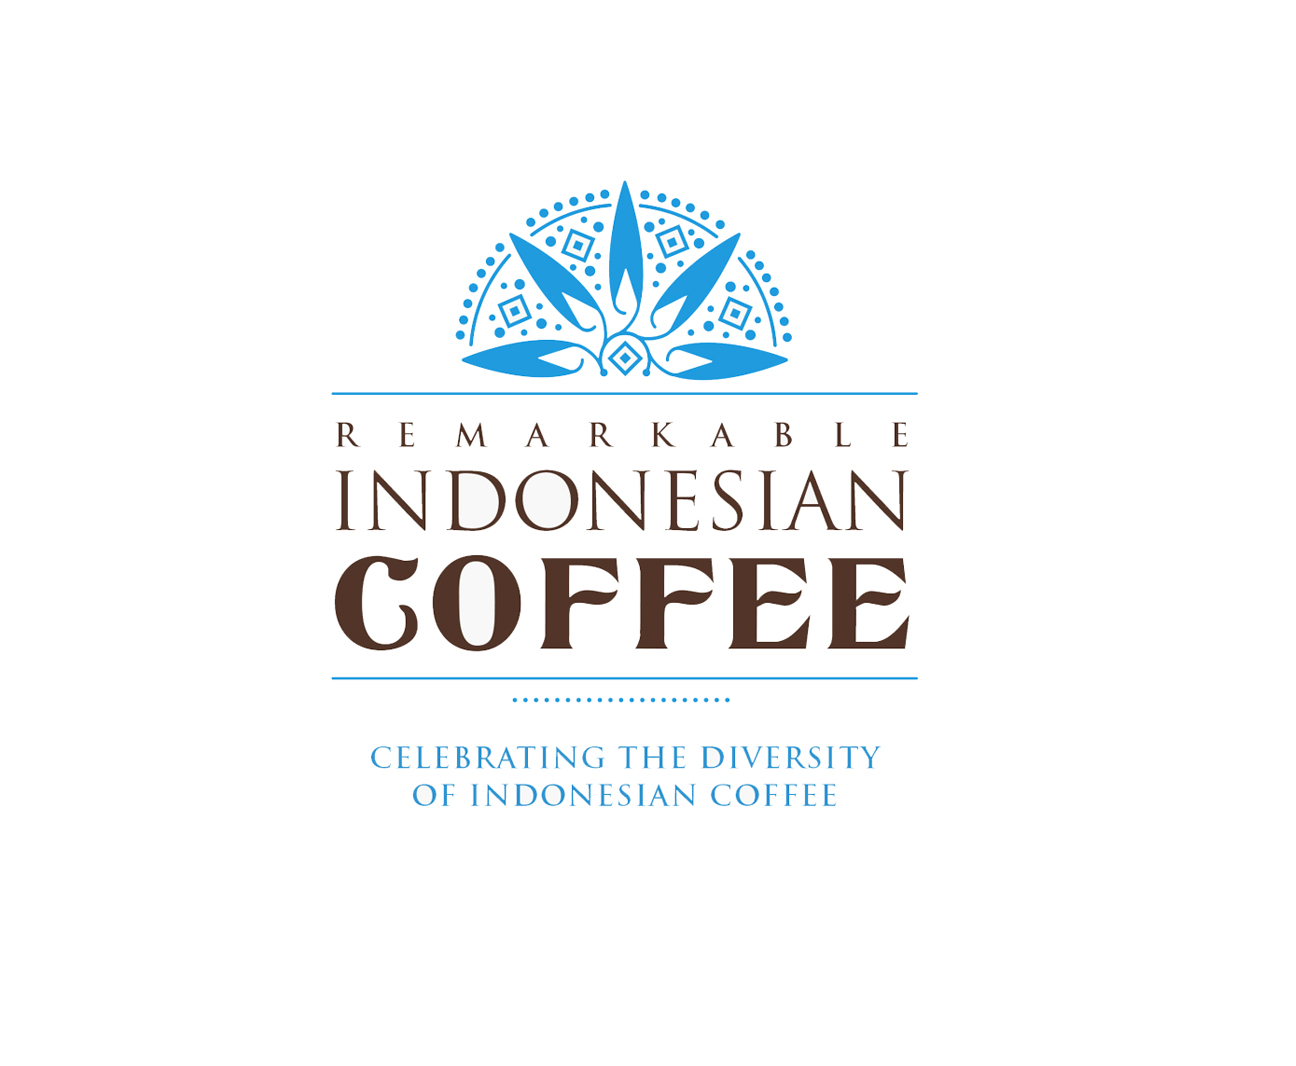 indonesian_coffee_logo.jpg